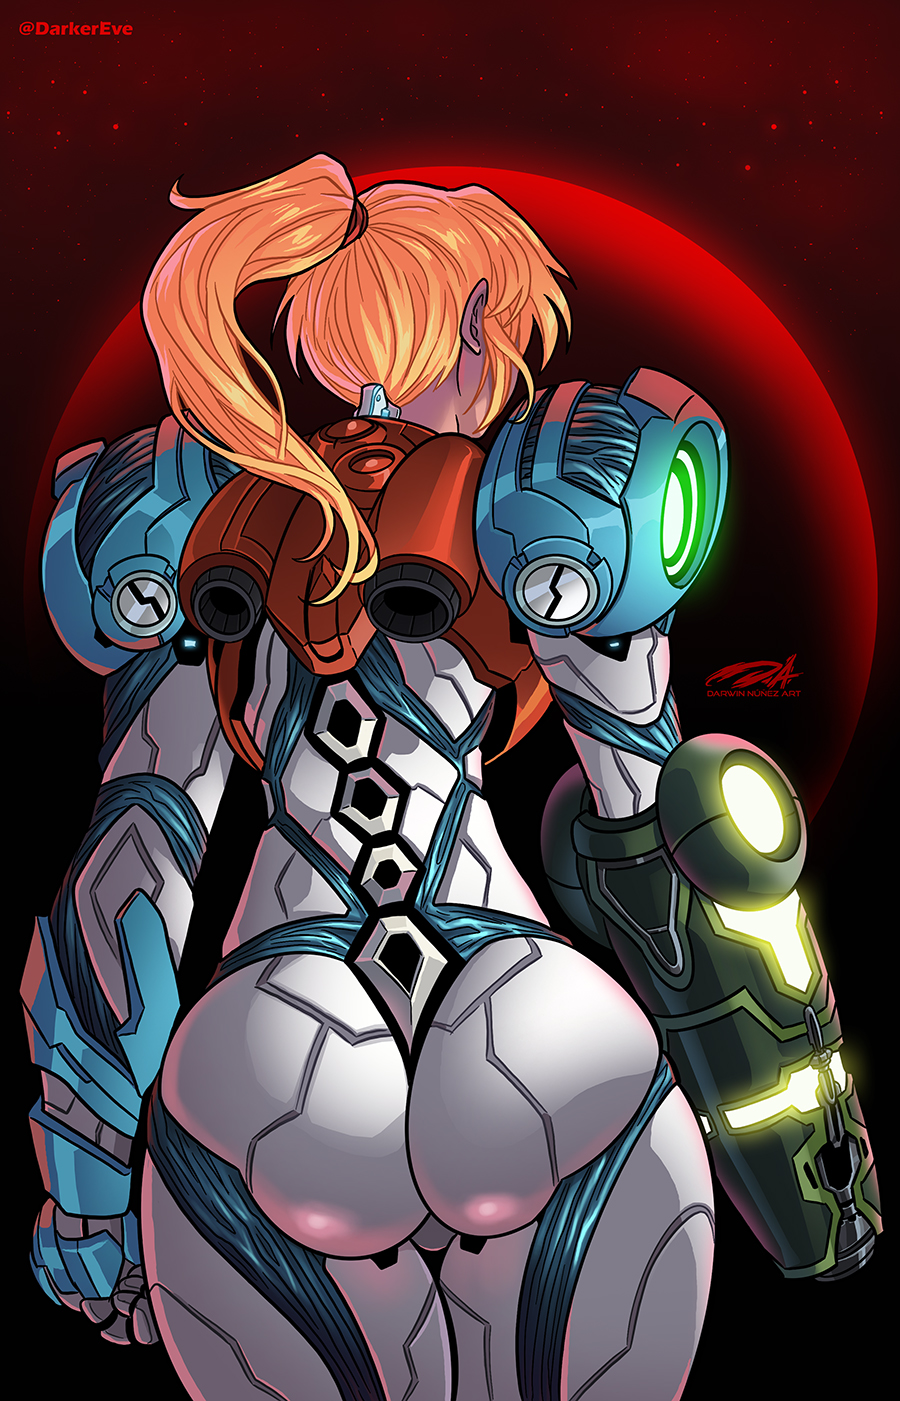 1girl arm_cannon artist_name ass back blonde_hair darkereve from_behind glowing highres jetpack metroid metroid_dread planet ponytail power_armor power_suit samus_aran solo space star_(sky) twitter_username weapon